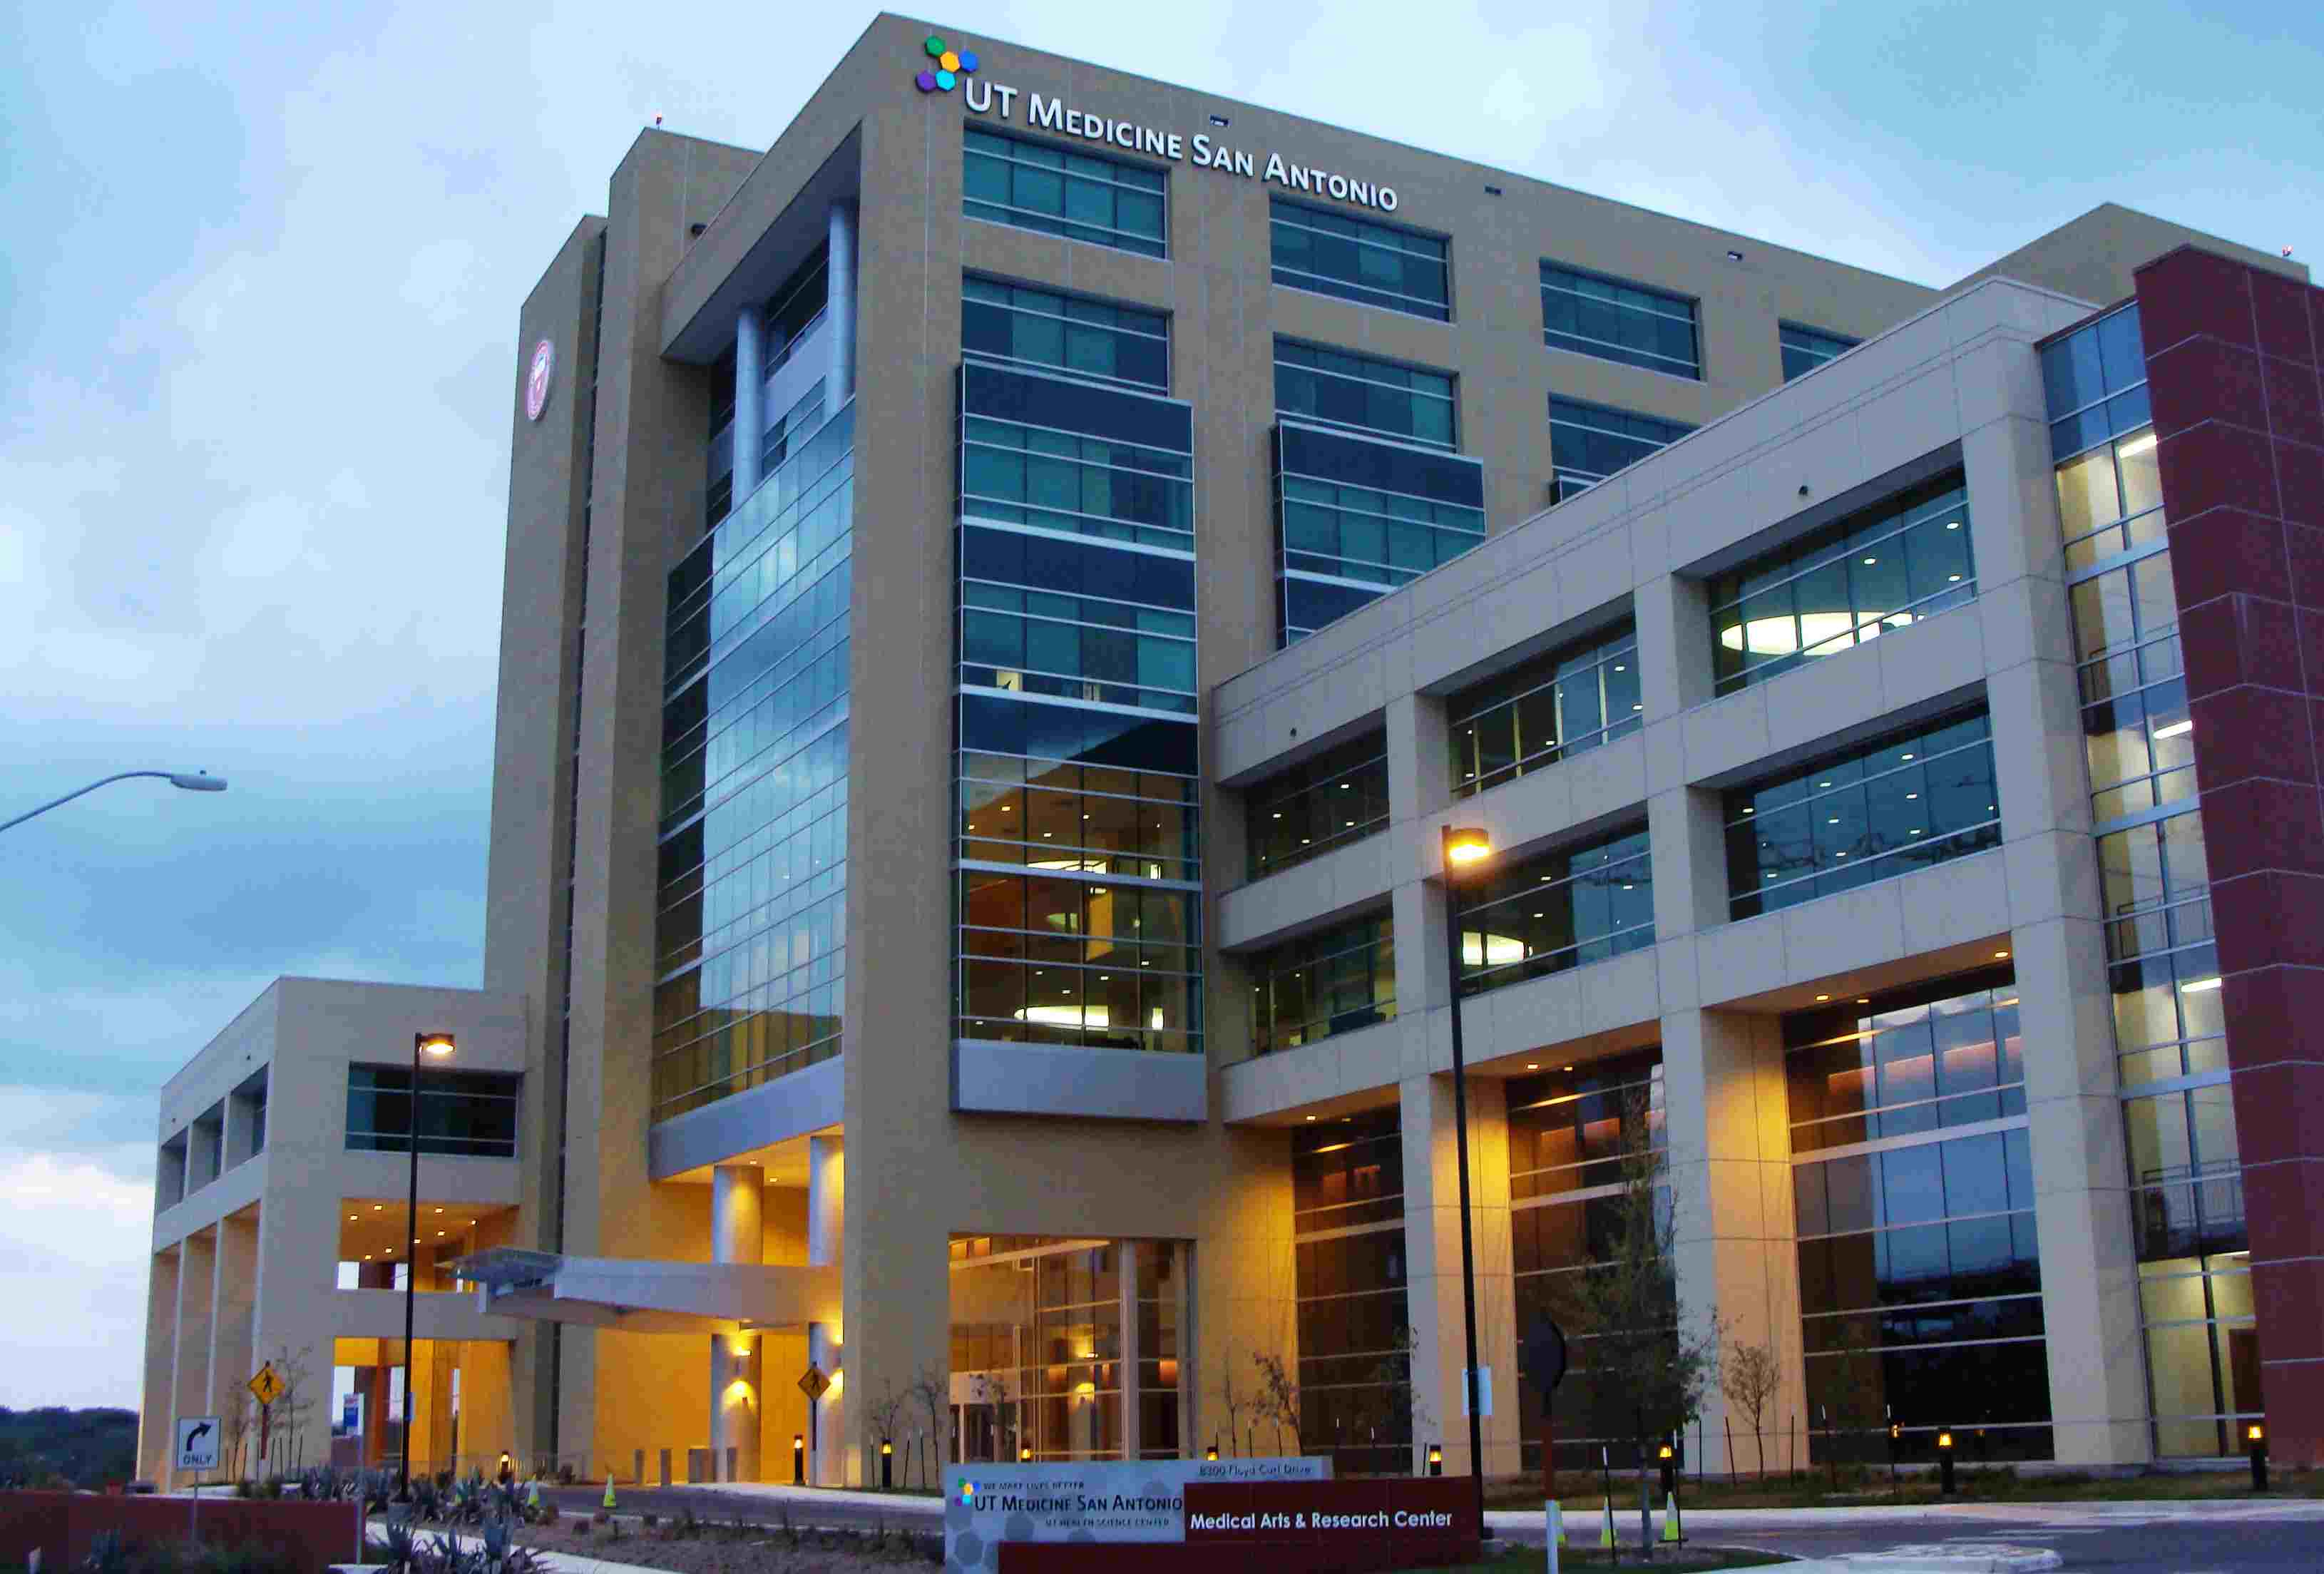 The Medical Arts & Research Center in San Antonio